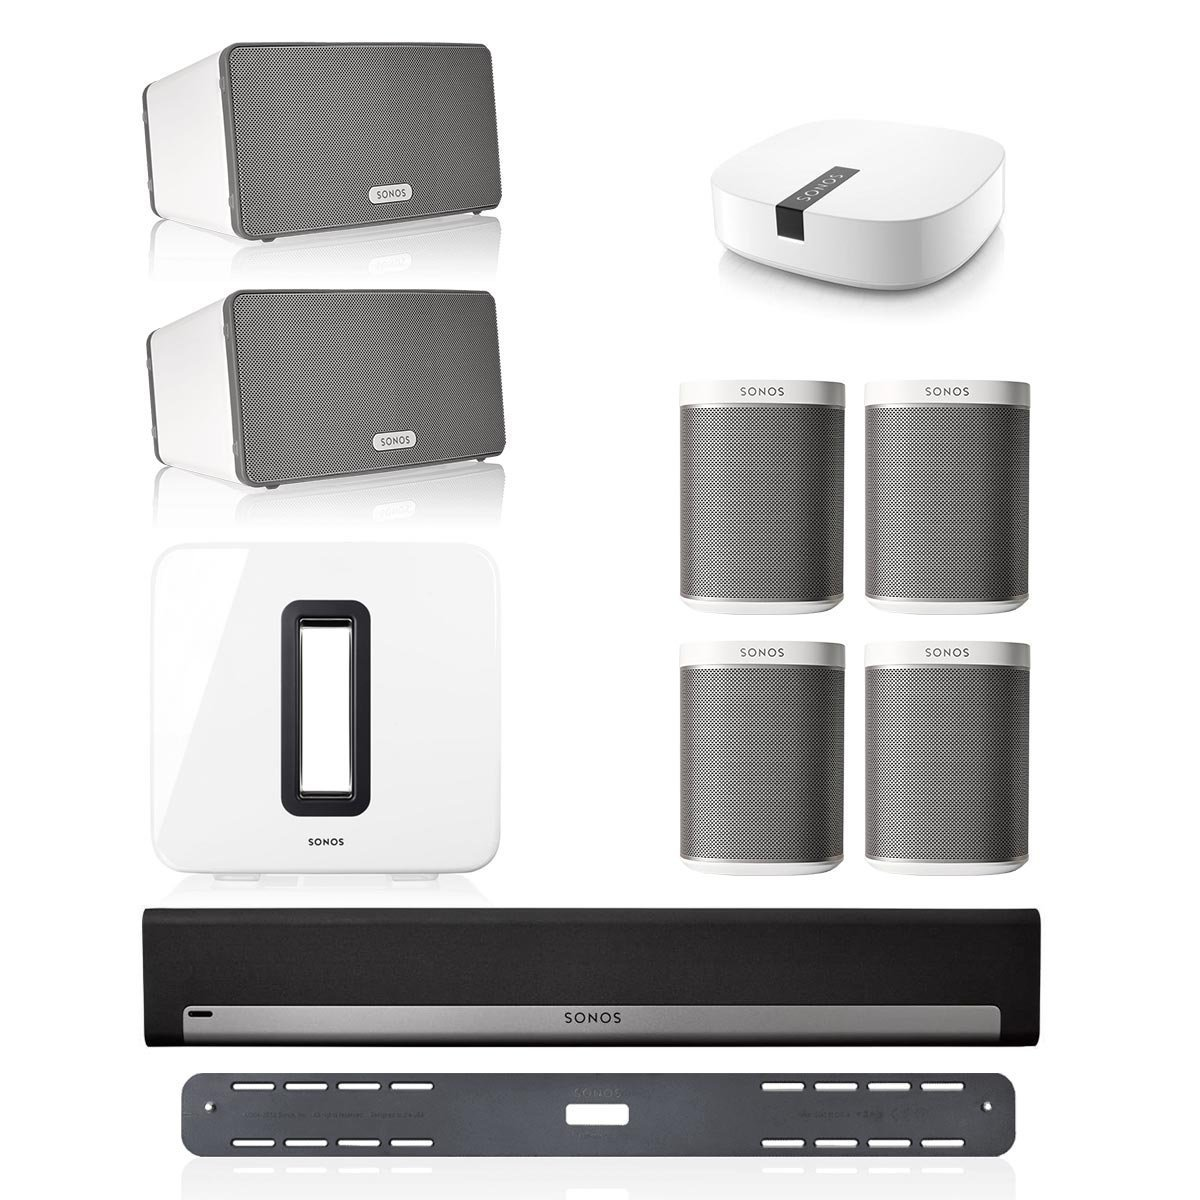 Sonos PLAYBAR Multi-Room Whole House Home Theater System with PLAY:1 Speakers, PLAY:3 Speaker, and SUB Wireless Subwoofer (White) by Sonos